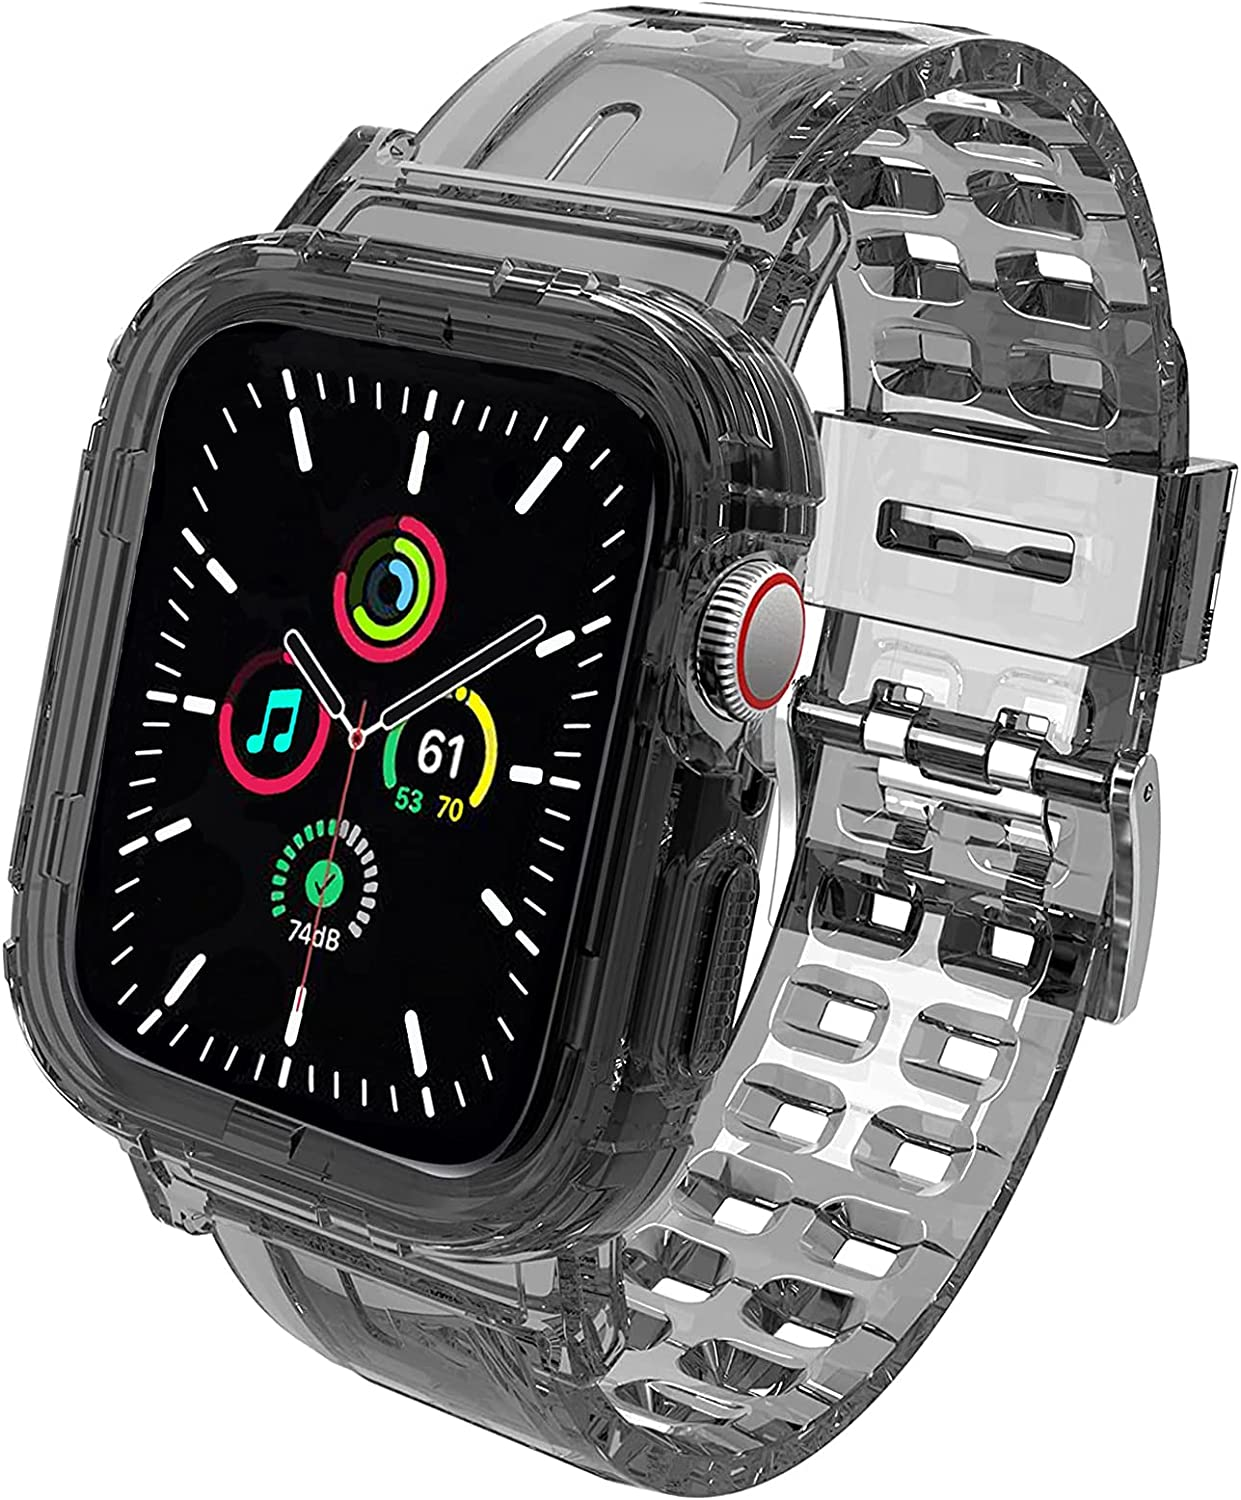 Compatible for Apple Watch Band 44mm 42mm with Protective Case, Men Women Crystal Clear Sporty Protective Drop-Proof Shockproof Case with Premium Soft Fadeless TPU Adjustable Strap Bands for iWatch Series 6/5/4/3/2